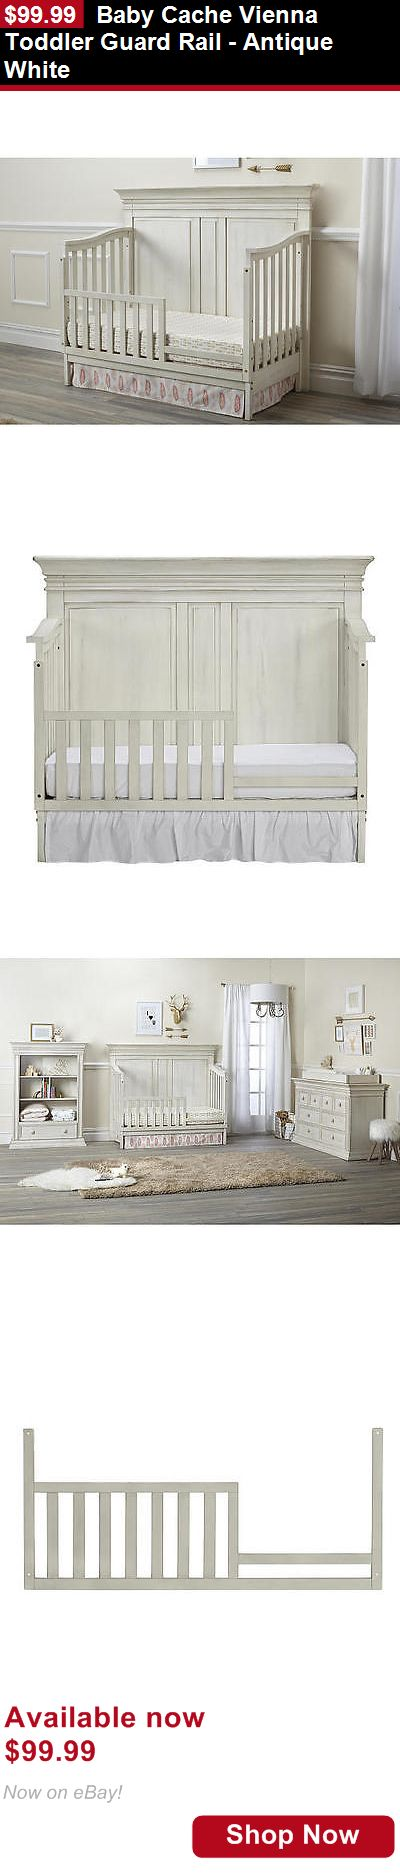 Nursery Furniture Sets: Baby Cache Vienna Toddler Guard Rail - Antique White BUY IT NOW ONLY: $99.99